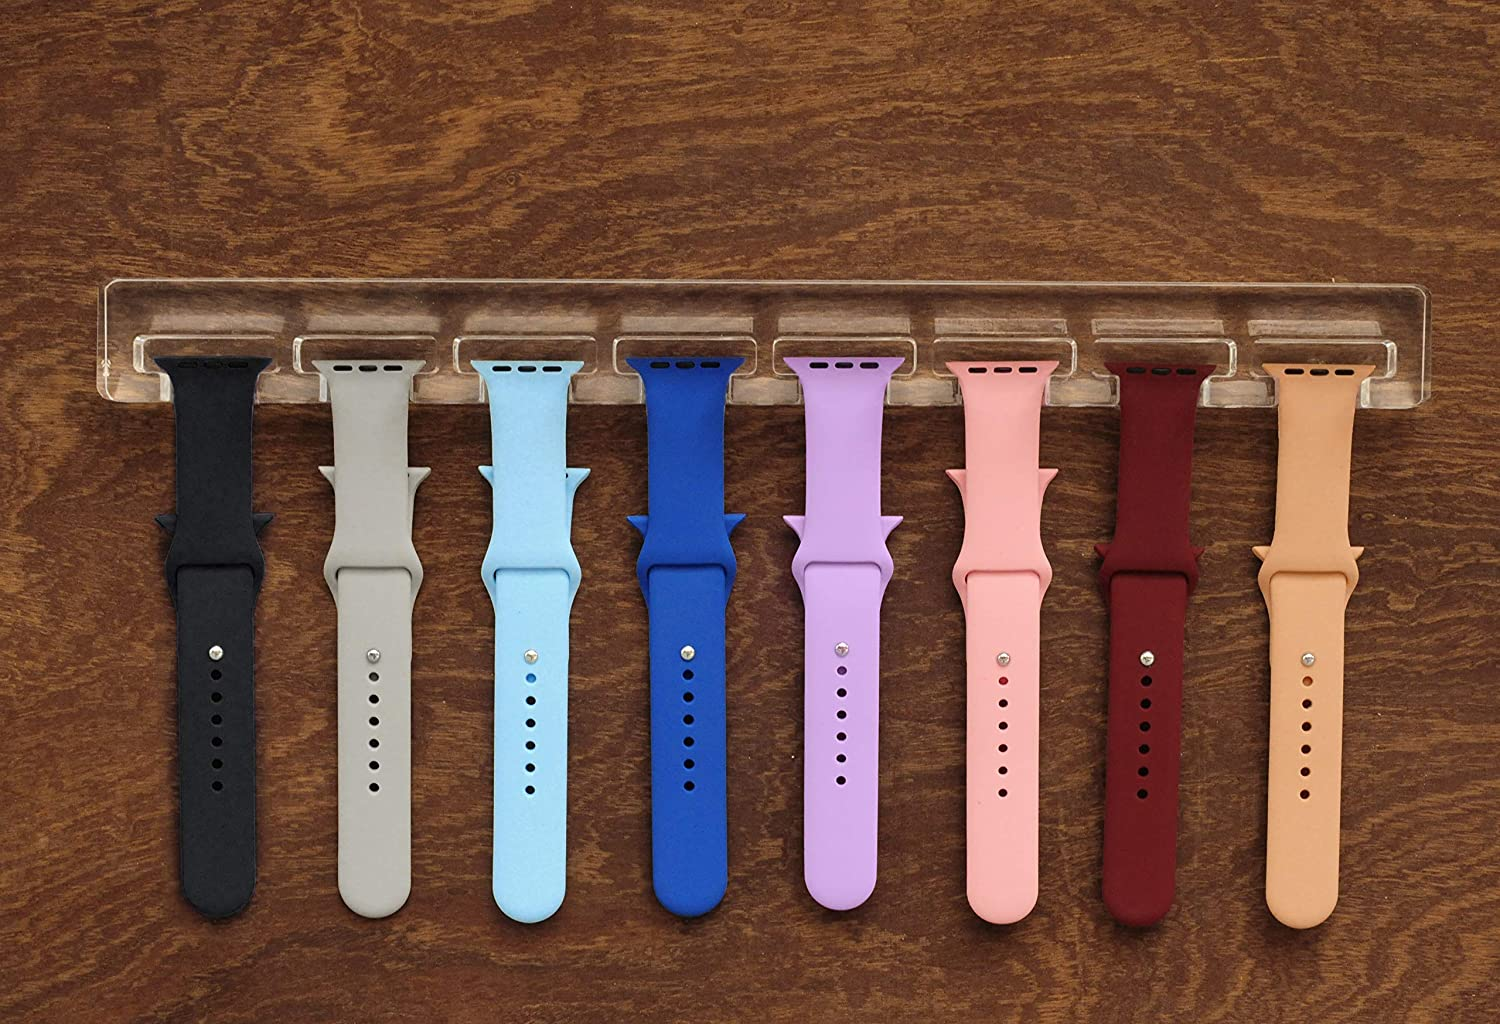 JEREVER Watch Band Organizer for Apple Watch Acrylic Smartwatch Band Wall Display Rack (Clear)